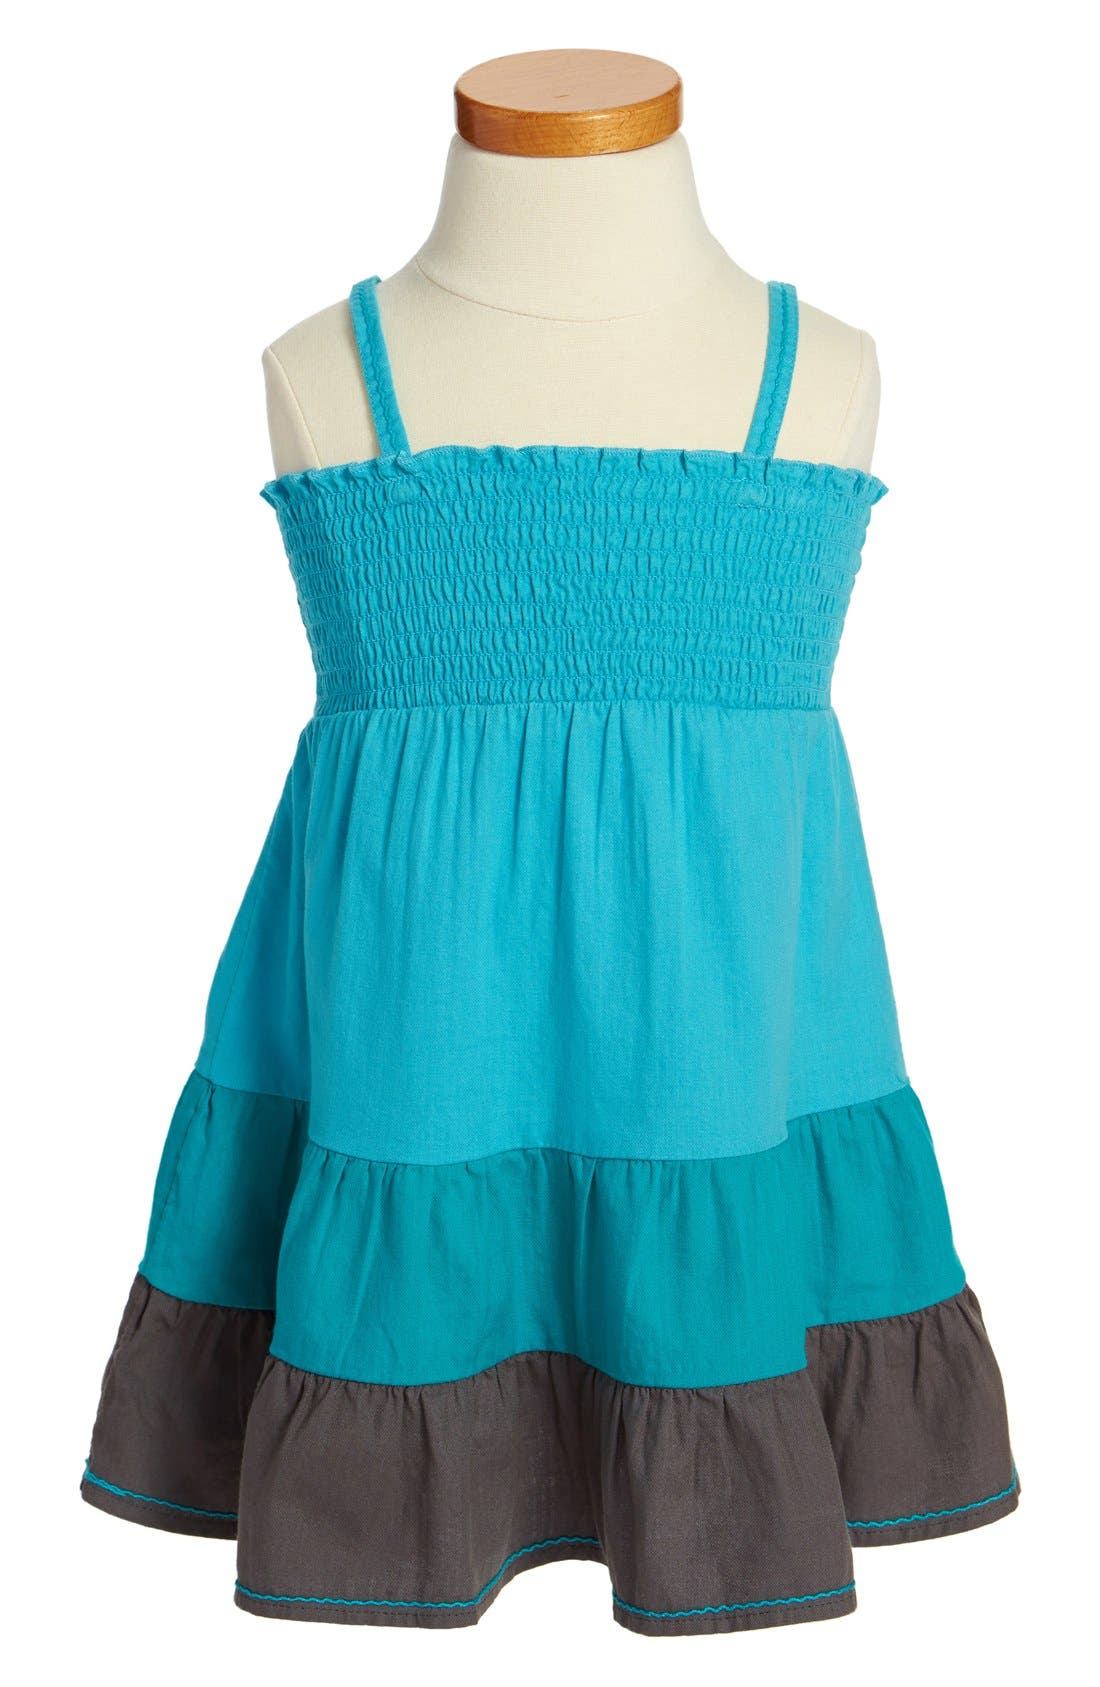 Main Image - Roxy 'Block Party' Sleeveless Dress (Toddler Girls)